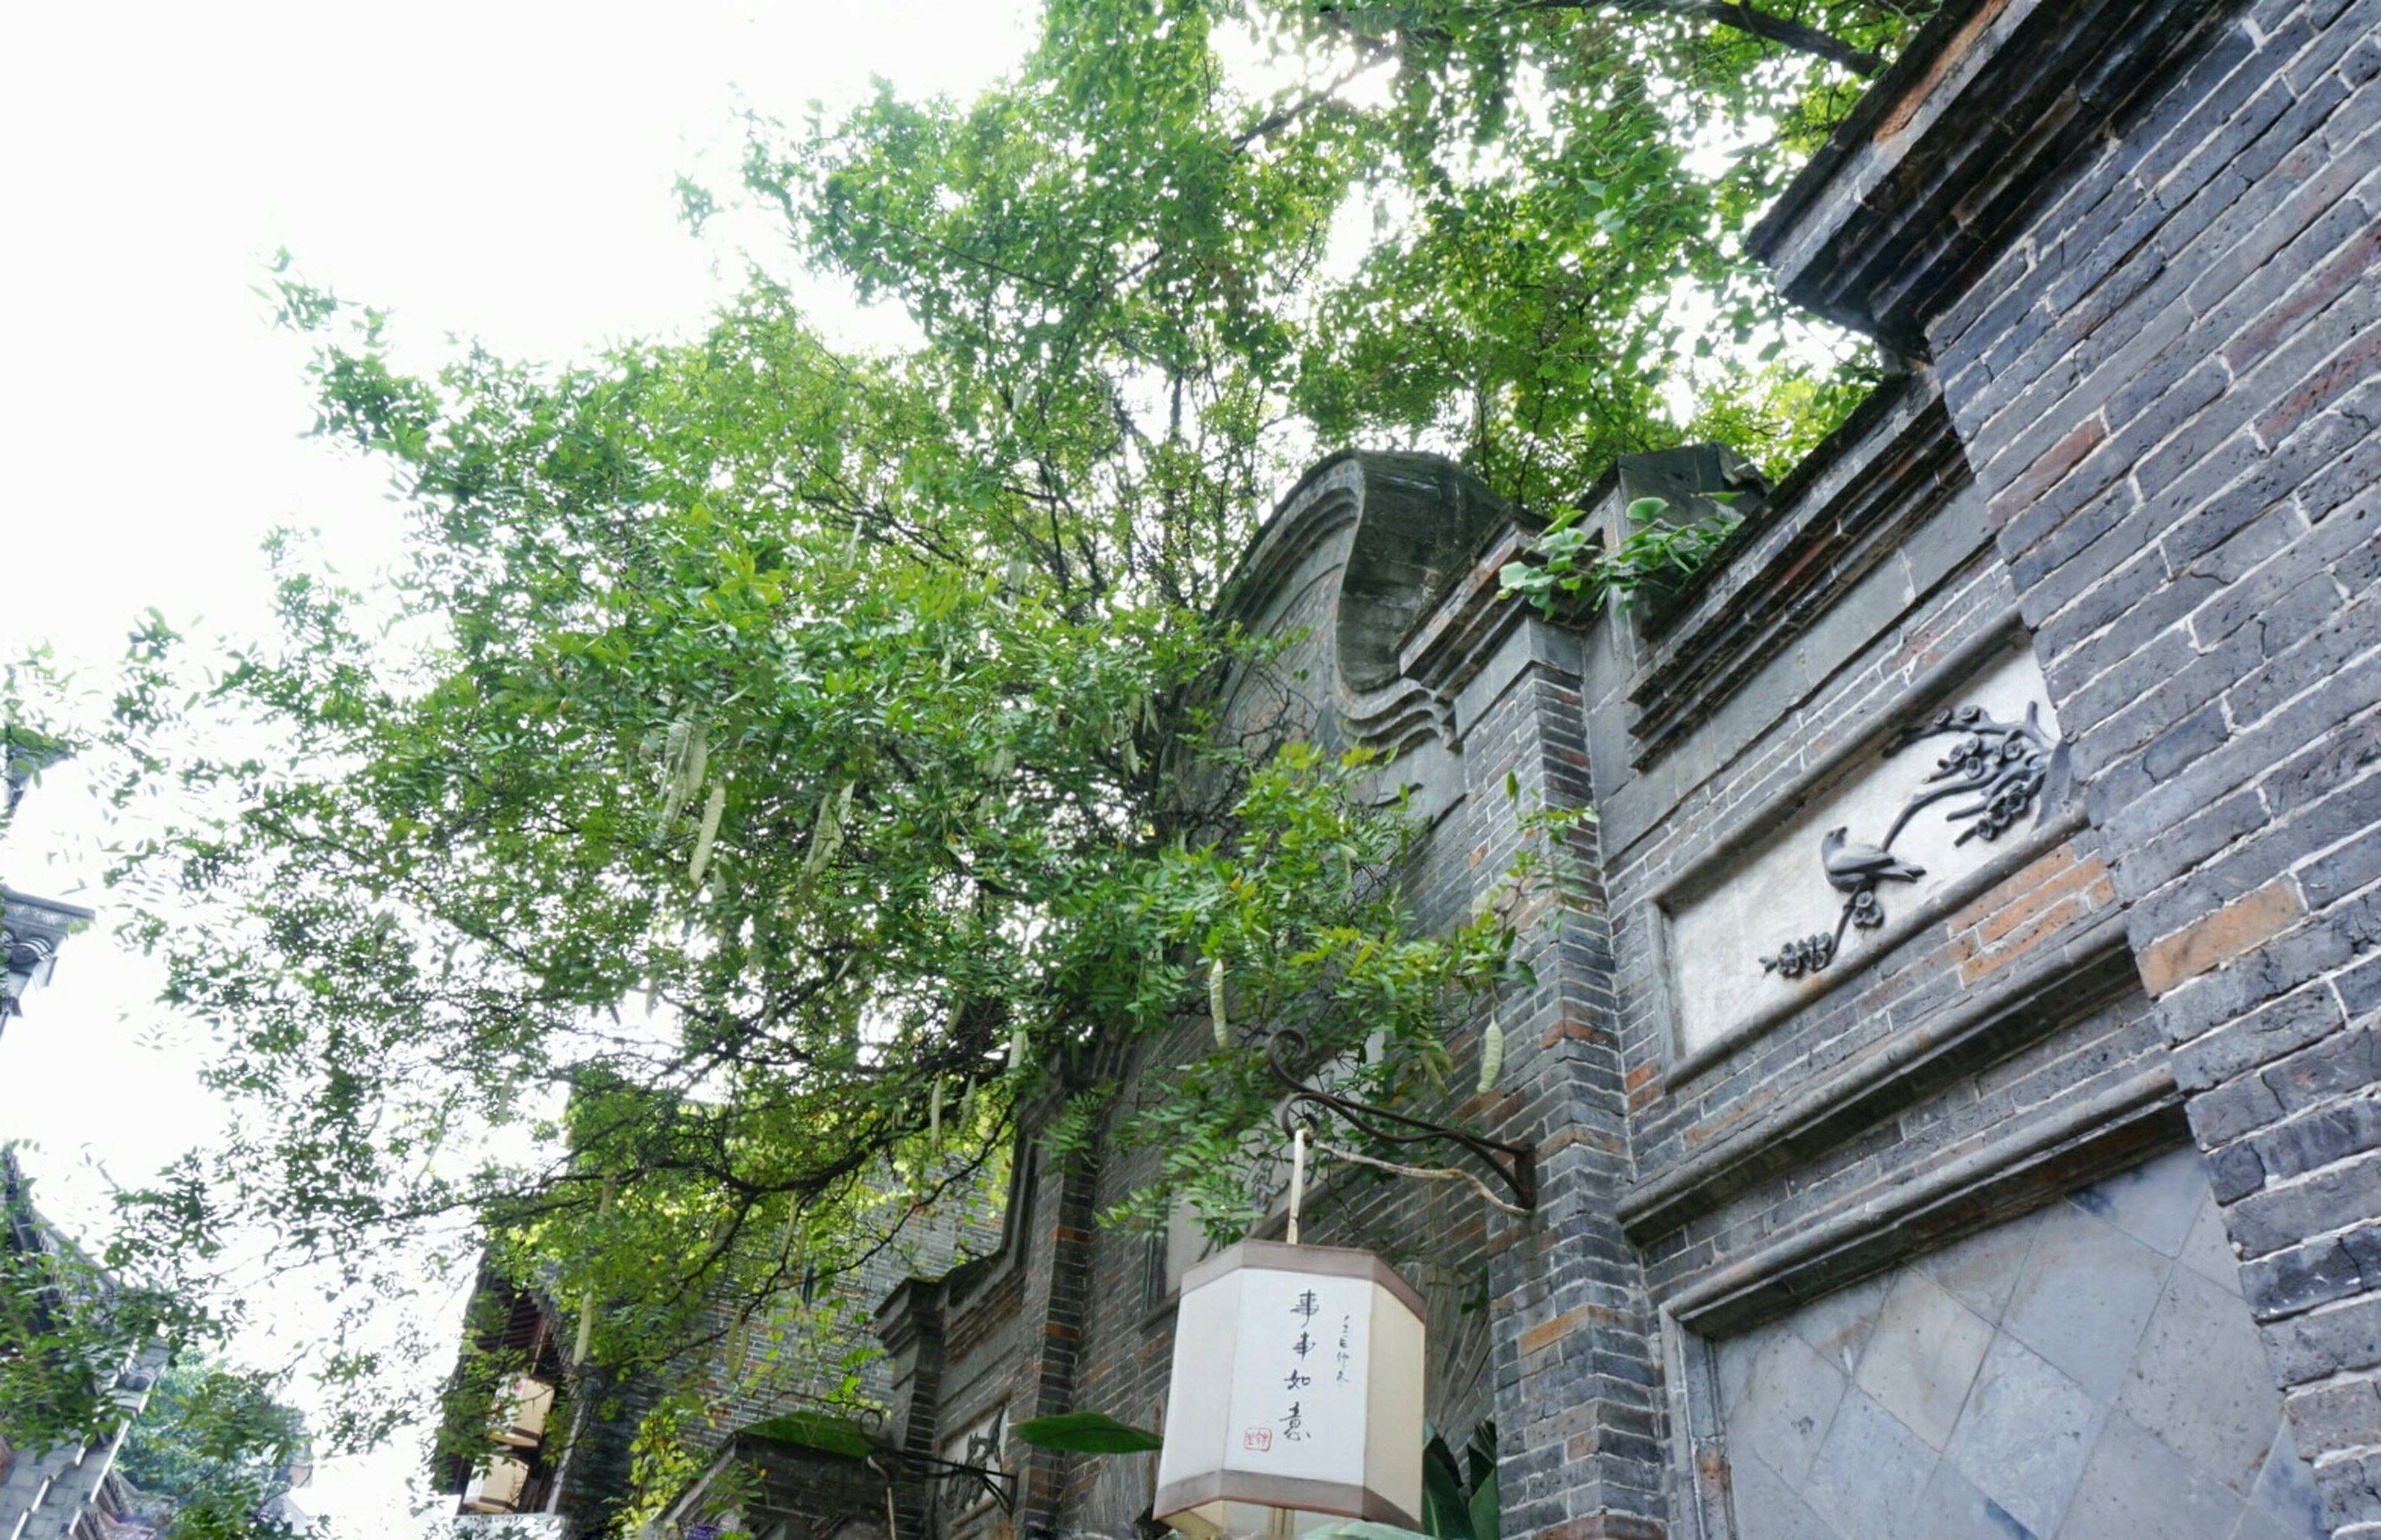 architecture, low angle view, building exterior, built structure, tree, text, communication, western script, growth, building, day, sky, outdoors, green color, non-western script, no people, old, branch, wall - building feature, window